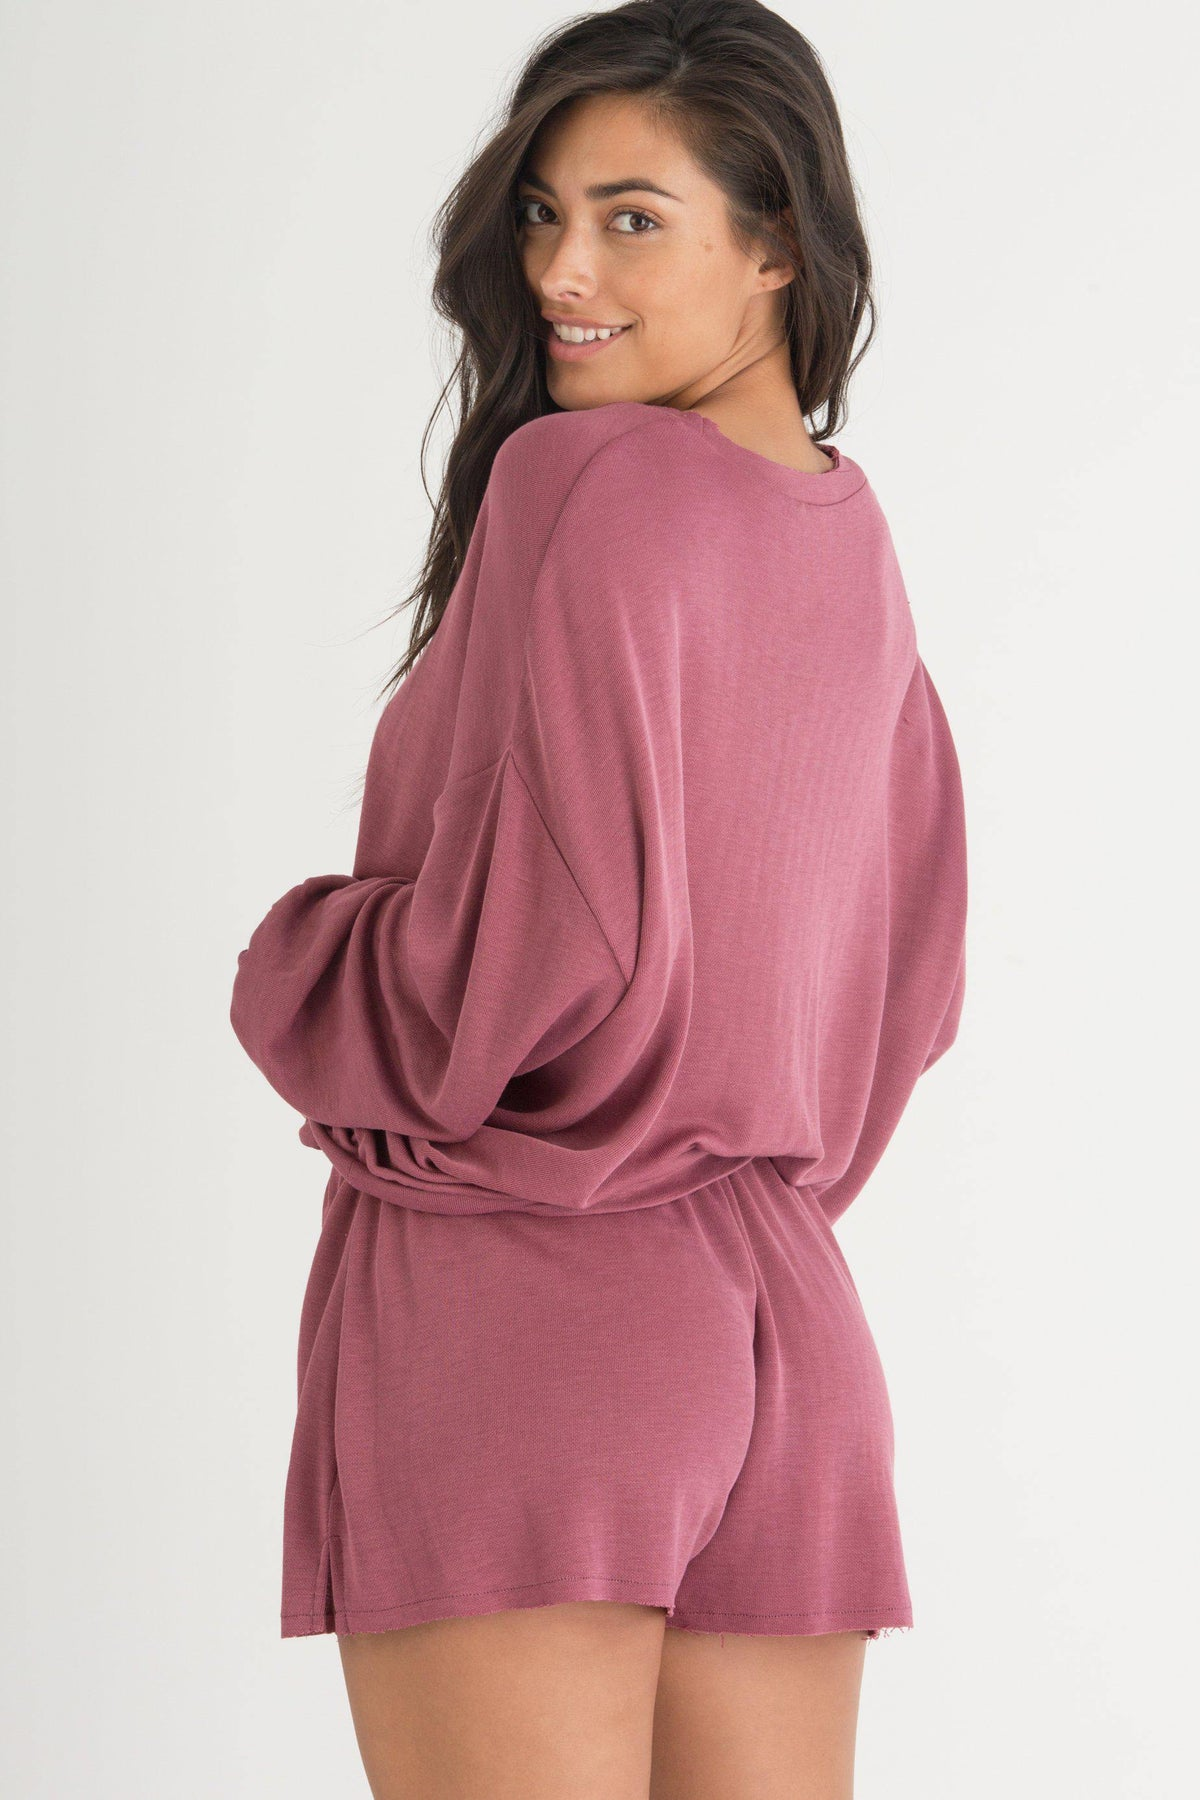 Fall Forever Lounge Sweater-Loungewear-Honeydew Intimates-Radiant-Small-Honeydew Intimates